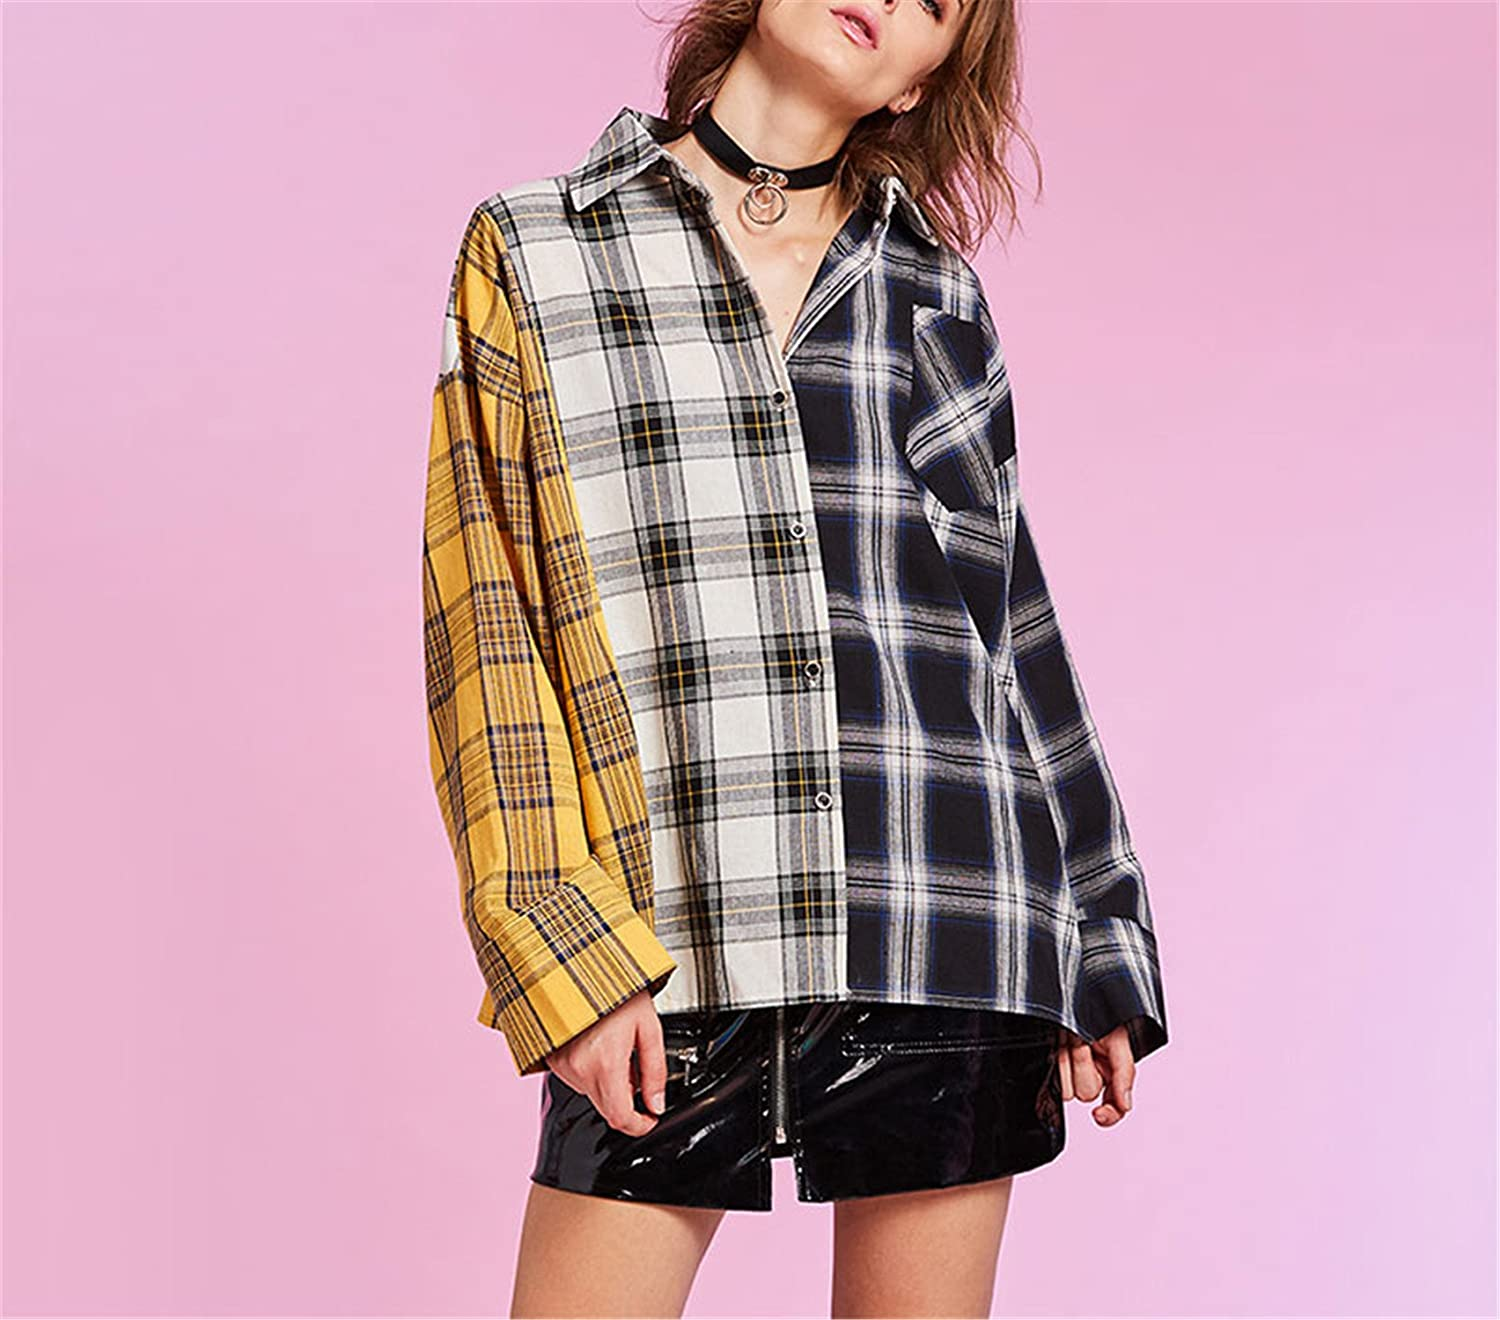 Chiffoned New Spring Shirt Women Plaid Shirt Cotton Long Sleeve Patchwork Blouse For Girls Top Street Wear Shirt Yellow One Size at Amazon Womens Clothing ...